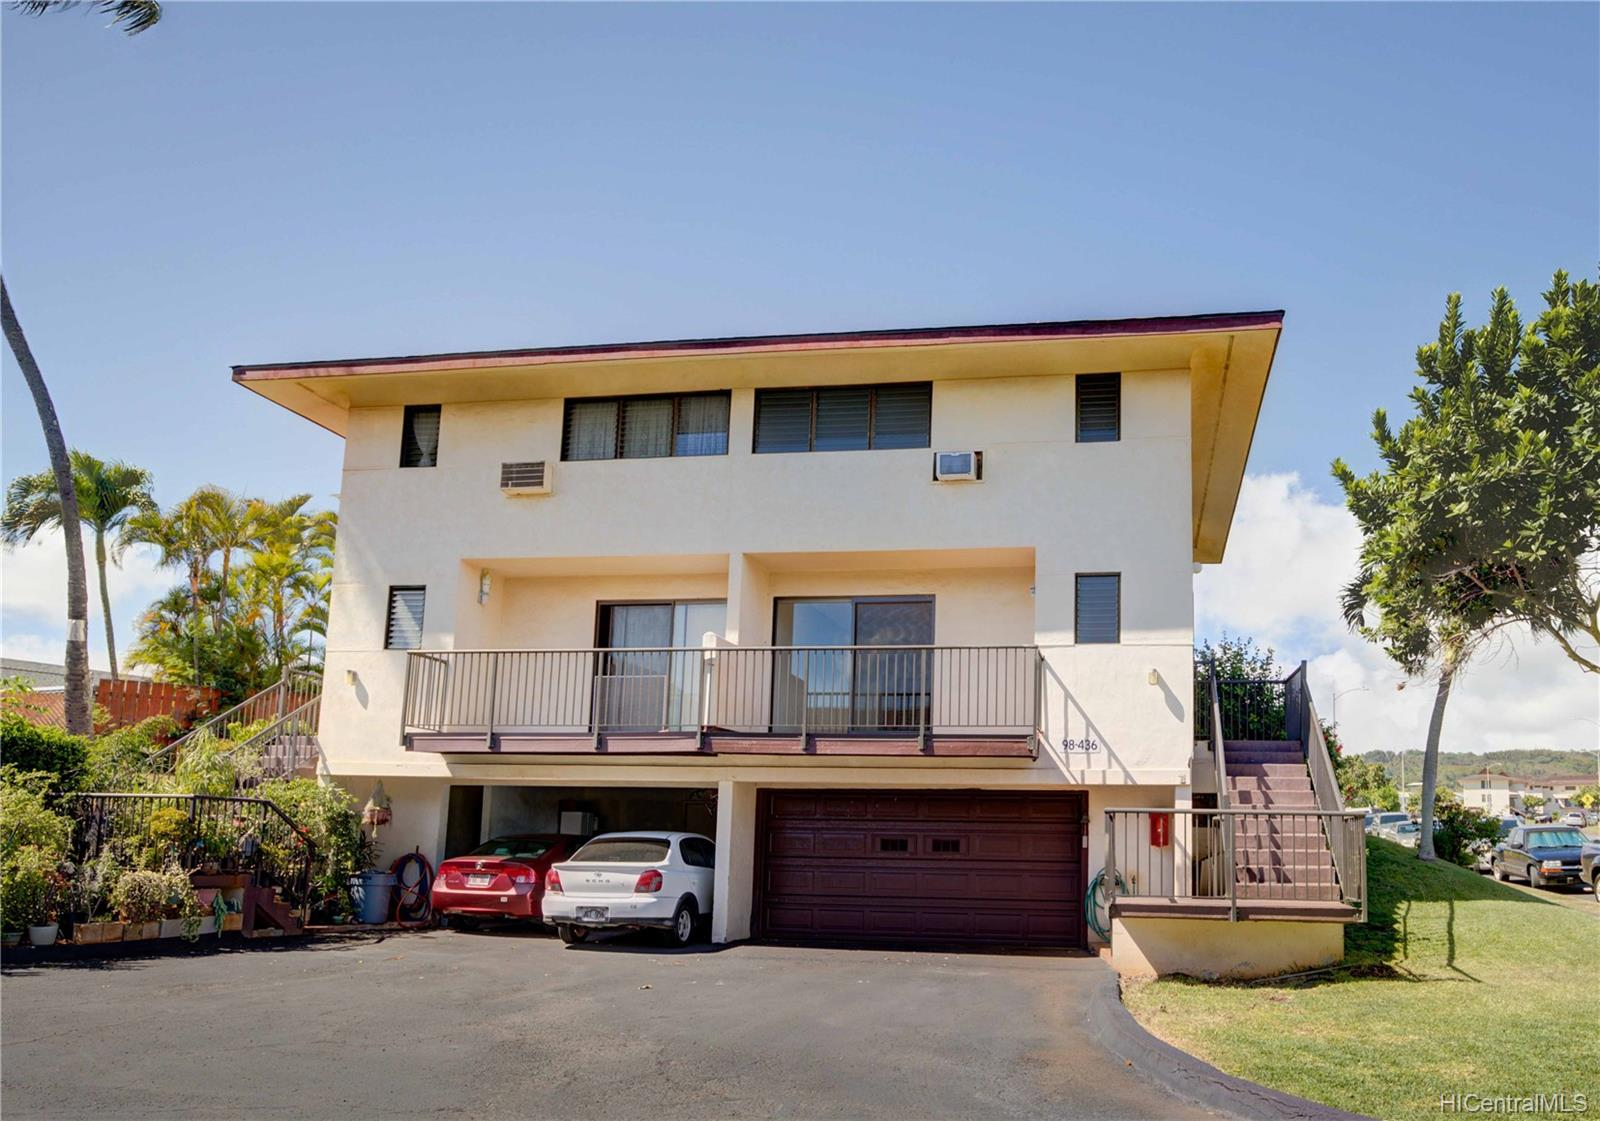 98-436 Kaonohi Street townhouse # 22/480, Aiea, Hawaii - photo 20 of 24